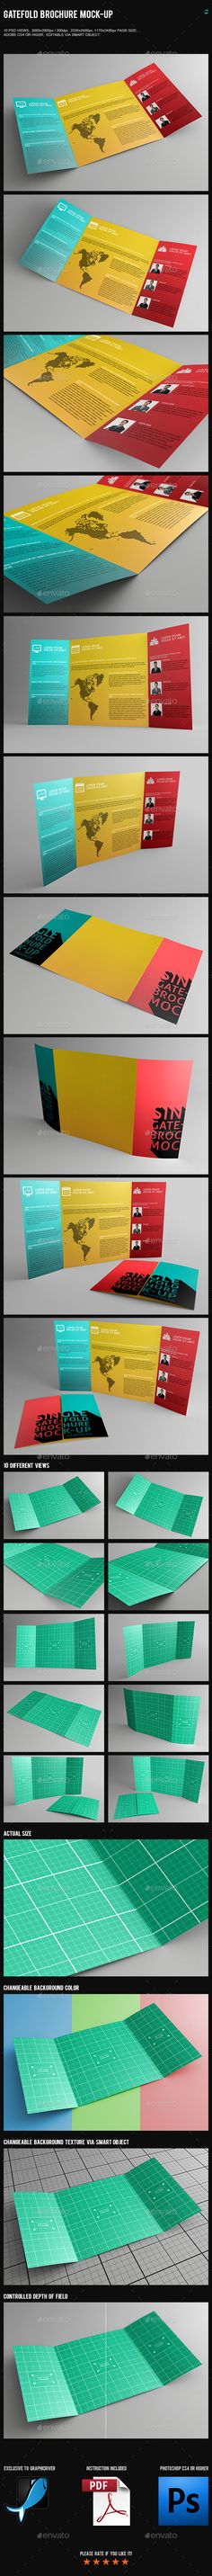 Double gate fold vertical brochure mock up isolated on soft gray